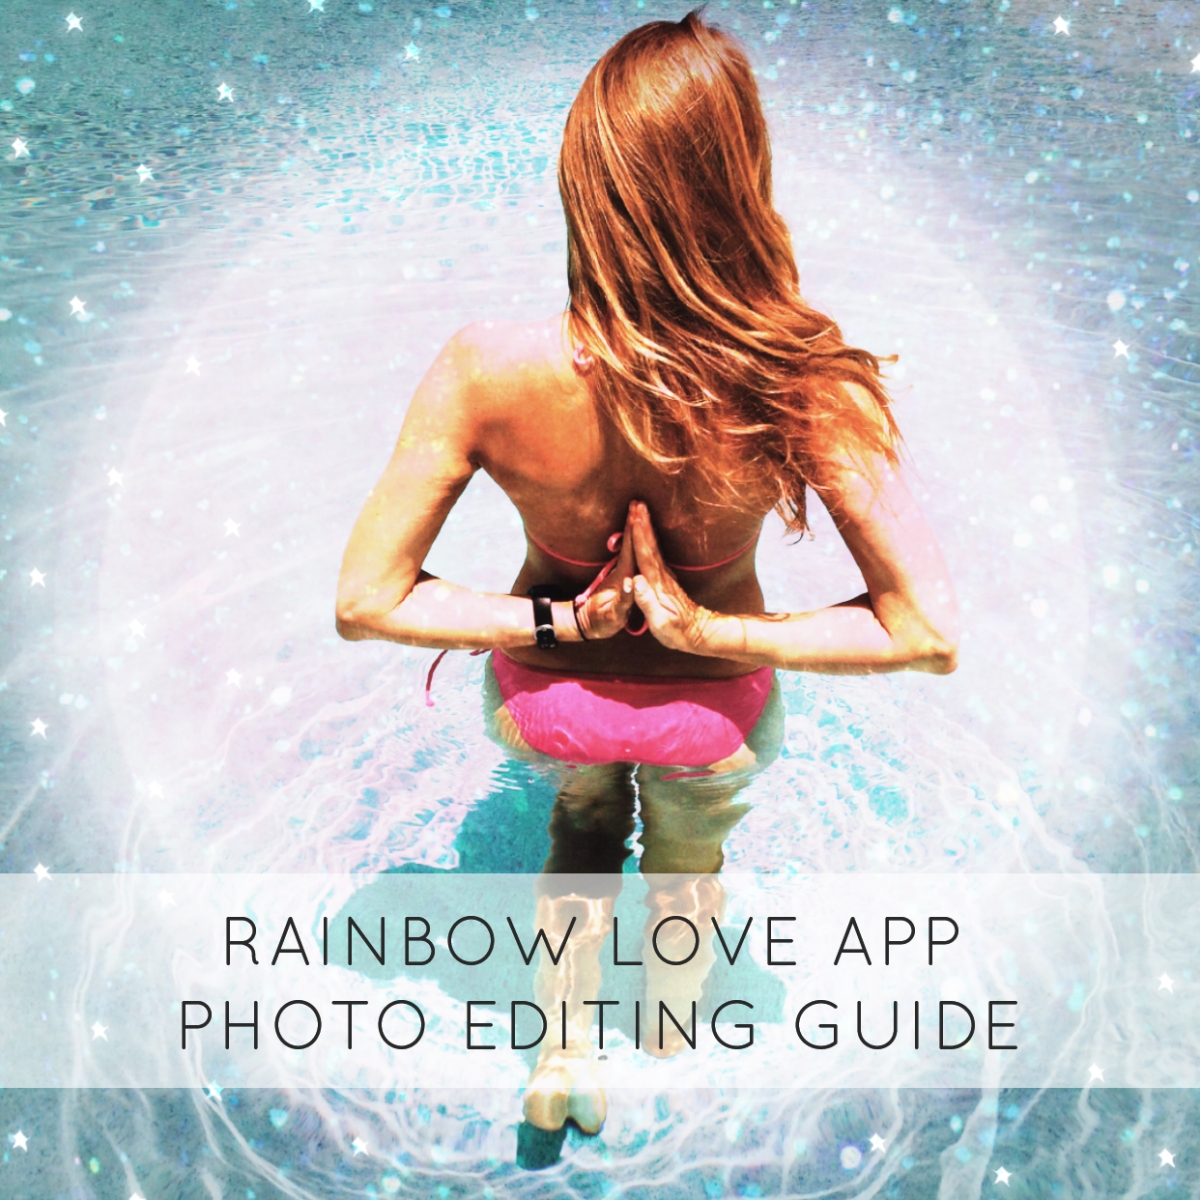 rainbow-love-app-photo-editing-designing-guide-adding-colorful-filters-art-text-to-photos-blog-post